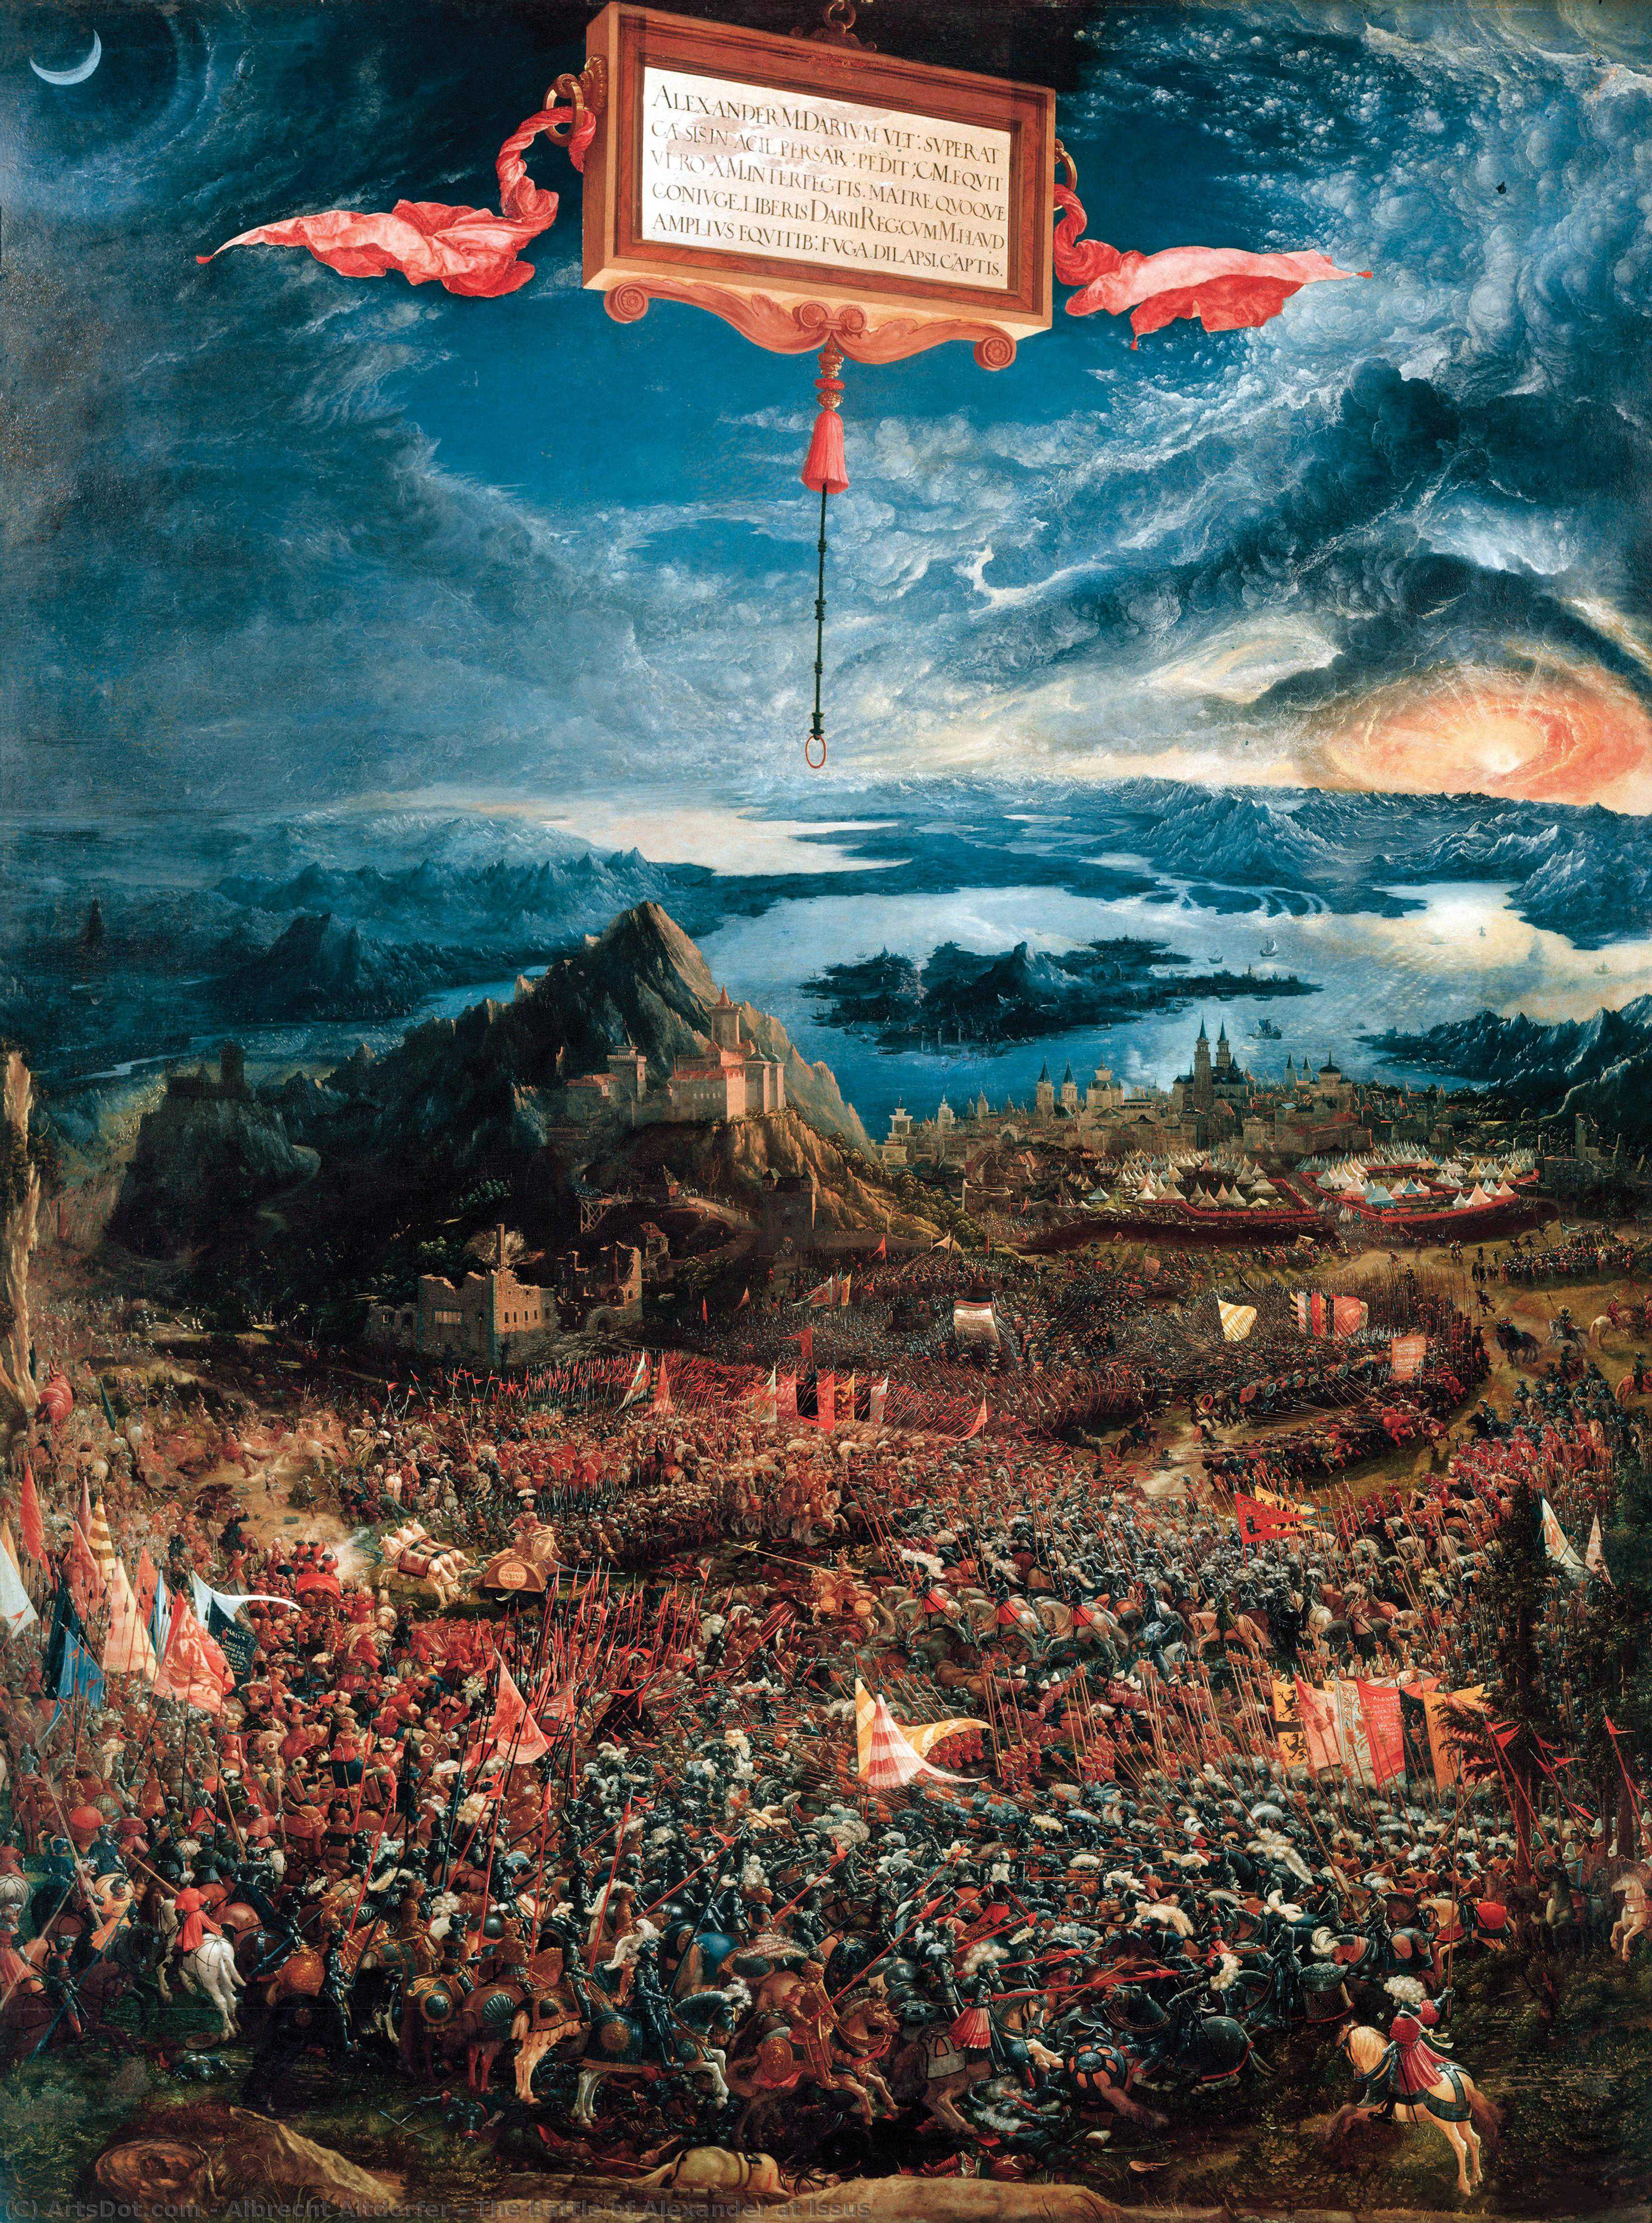 Wikioo.org - The Encyclopedia of Fine Arts - Painting, Artwork by Albrecht Altdorfer - The Battle of Alexander at Issus